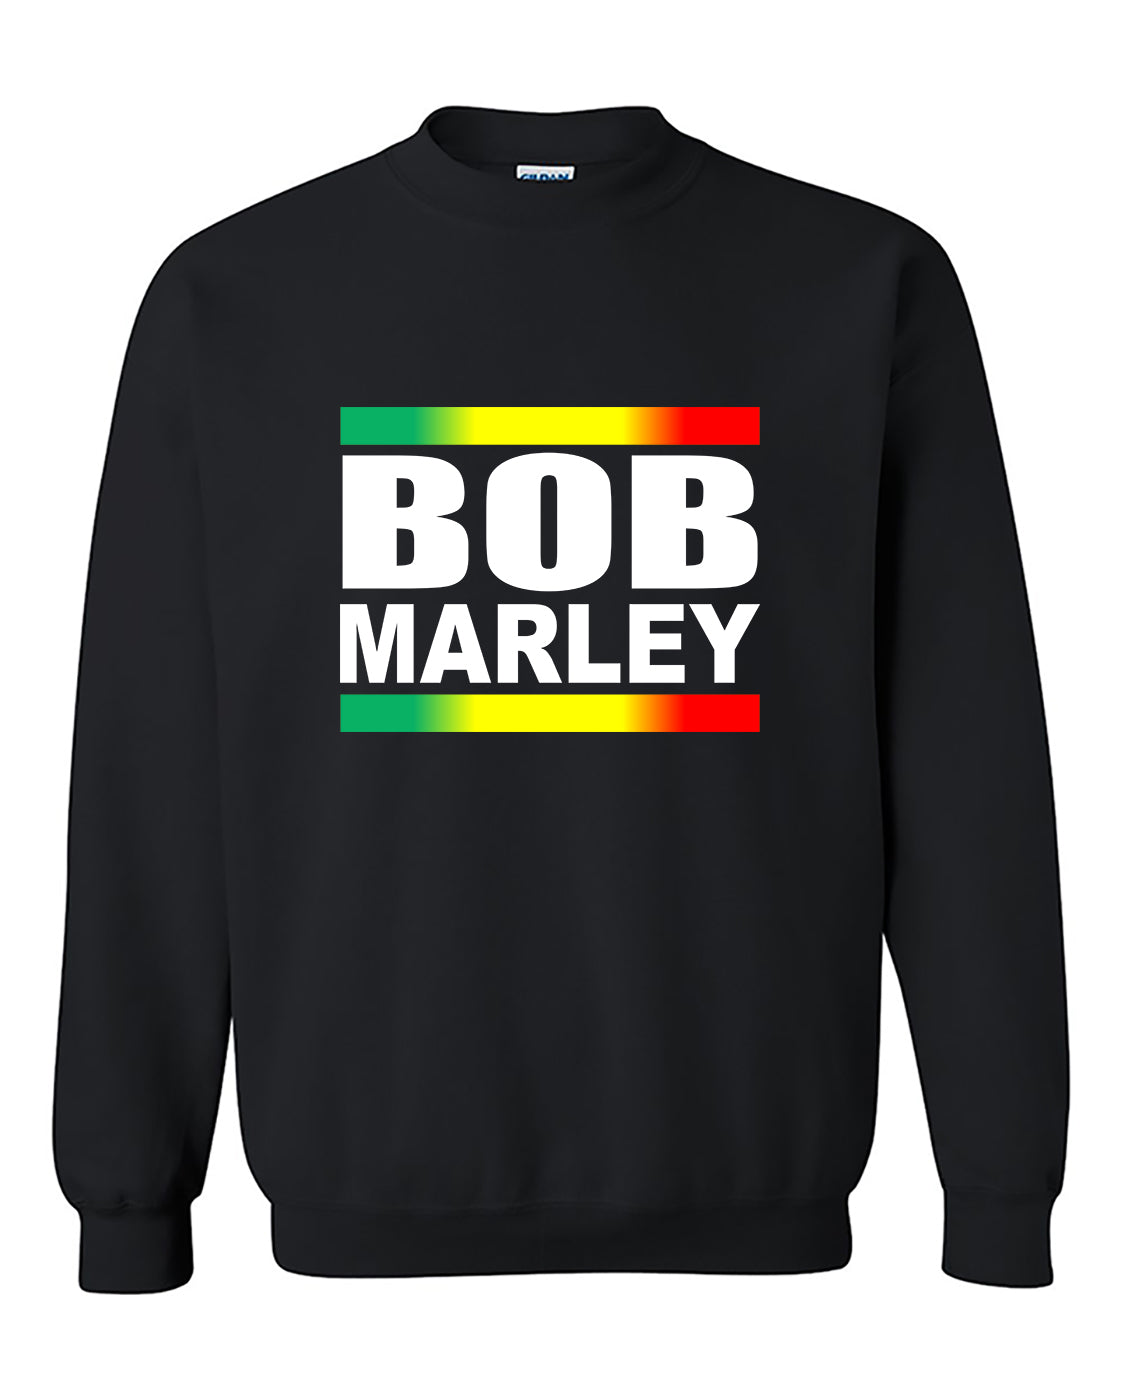 Bob Marley Rasta Weed Smokers Crewneck Sweater